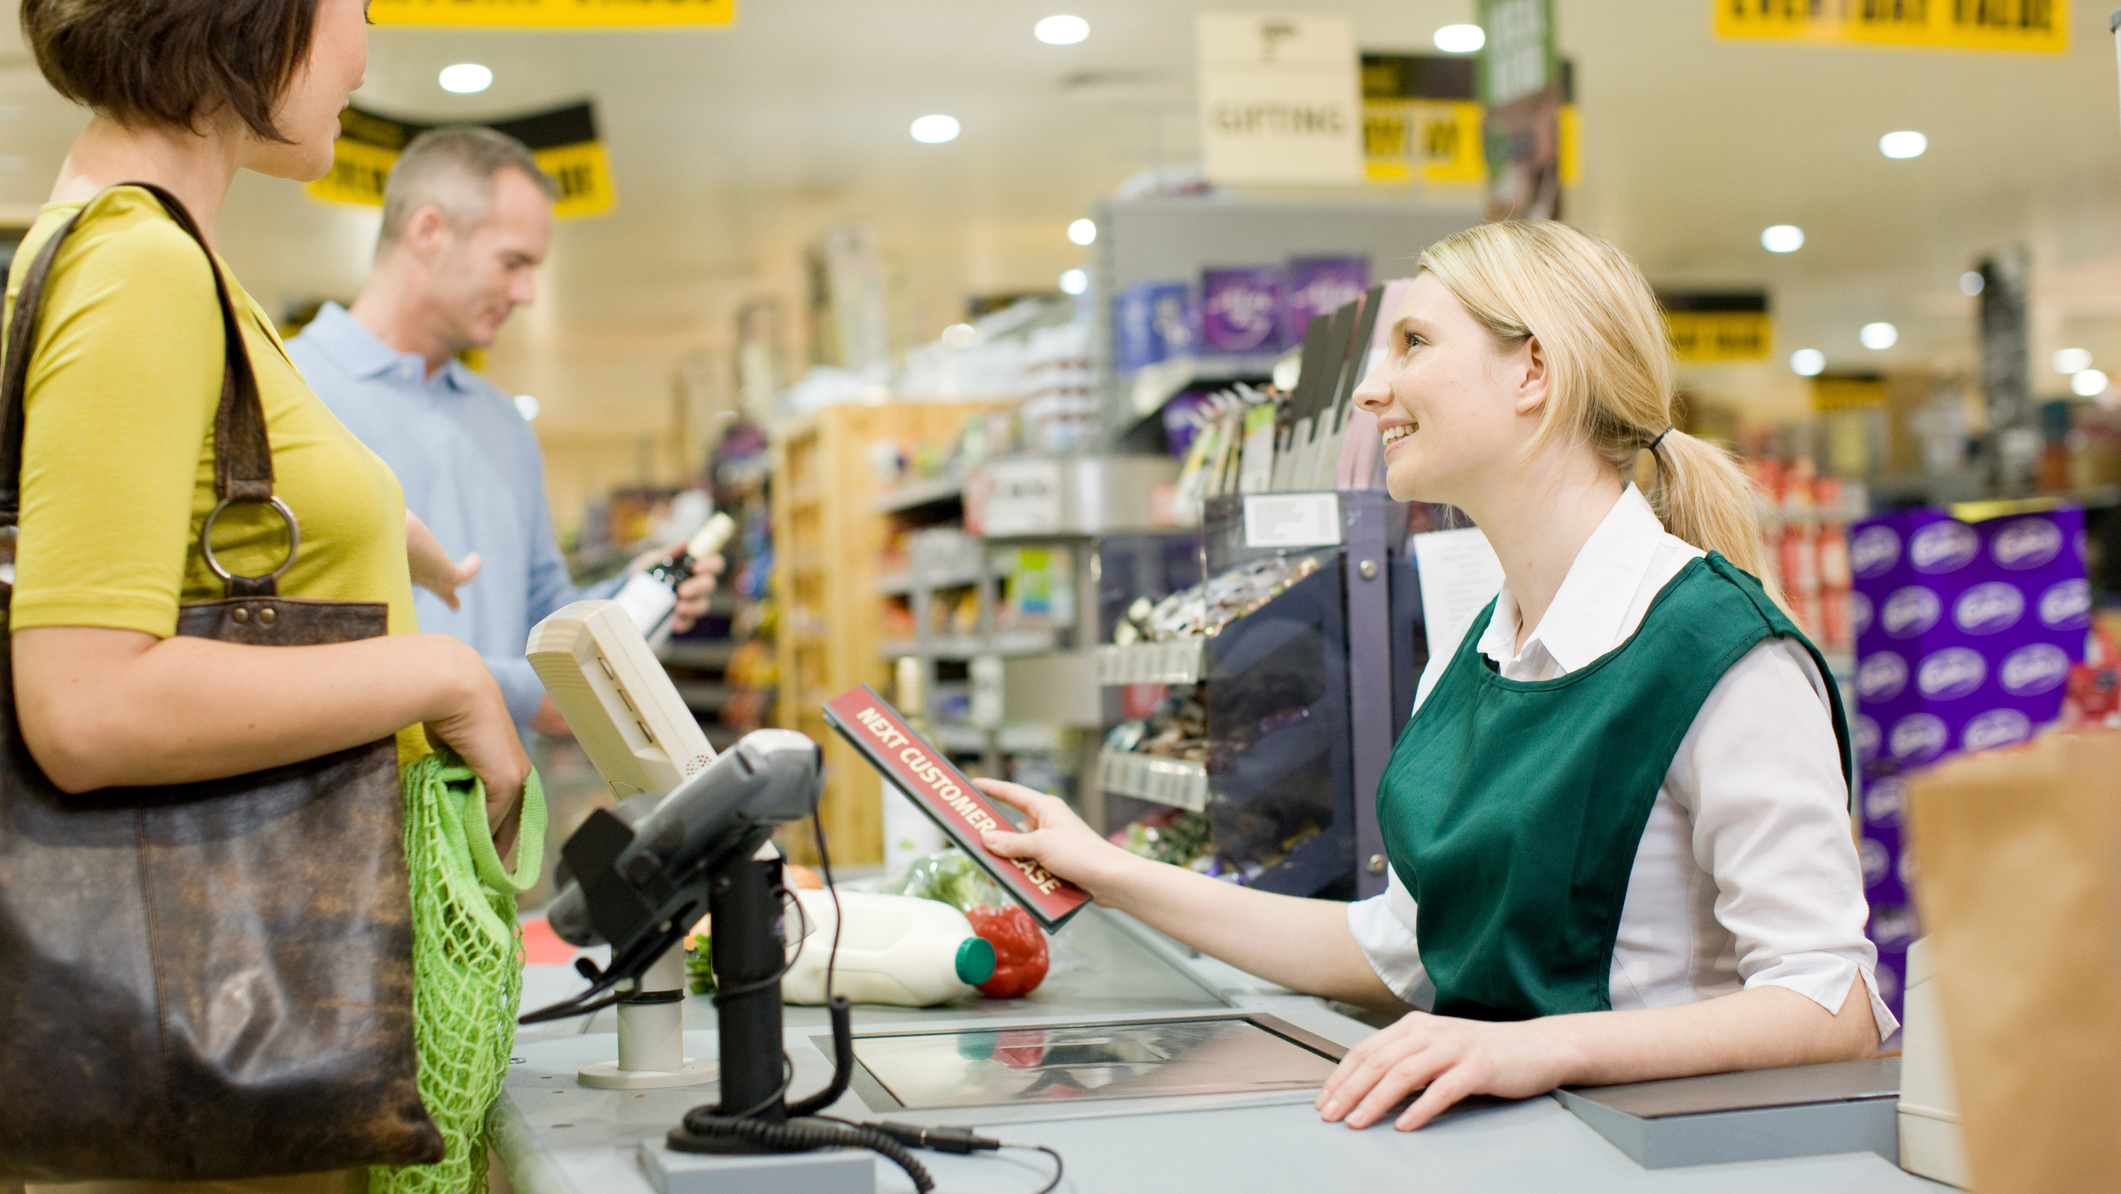 A cashier working at a checkout